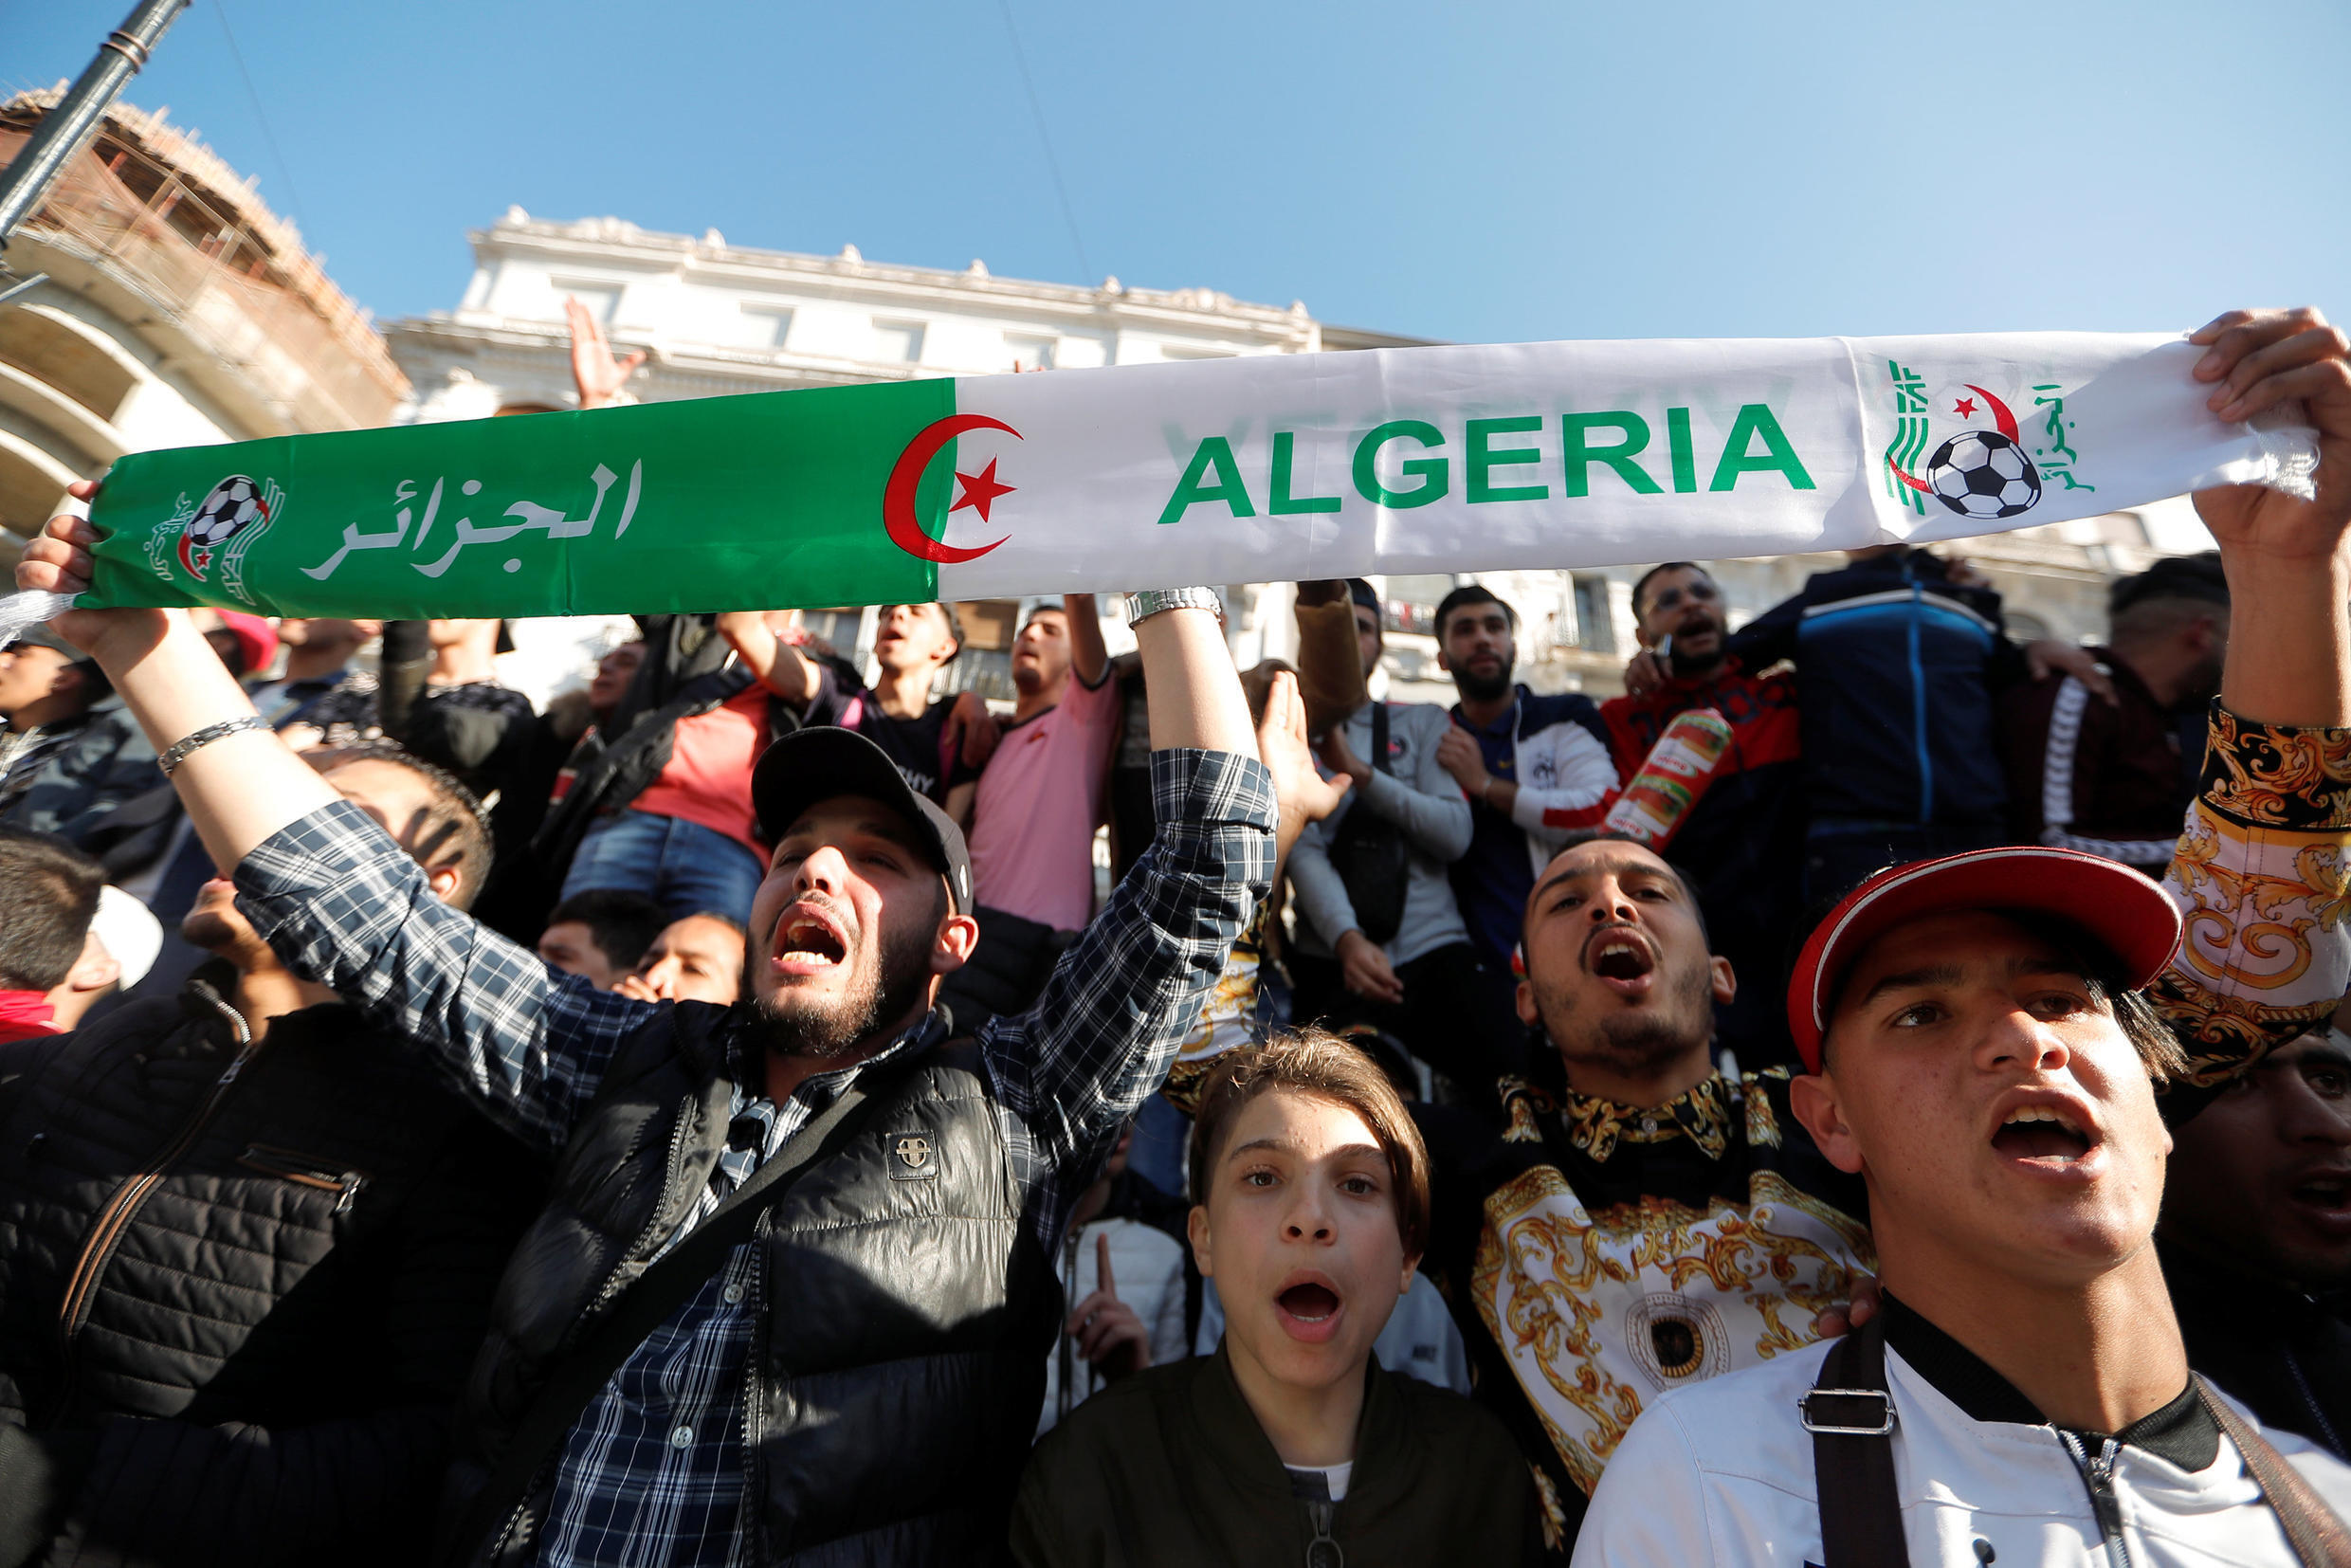 Protesters in Algiers on March 3, 2019, oppose Abdelaziz Bouteflika's run for a fifth term as president.